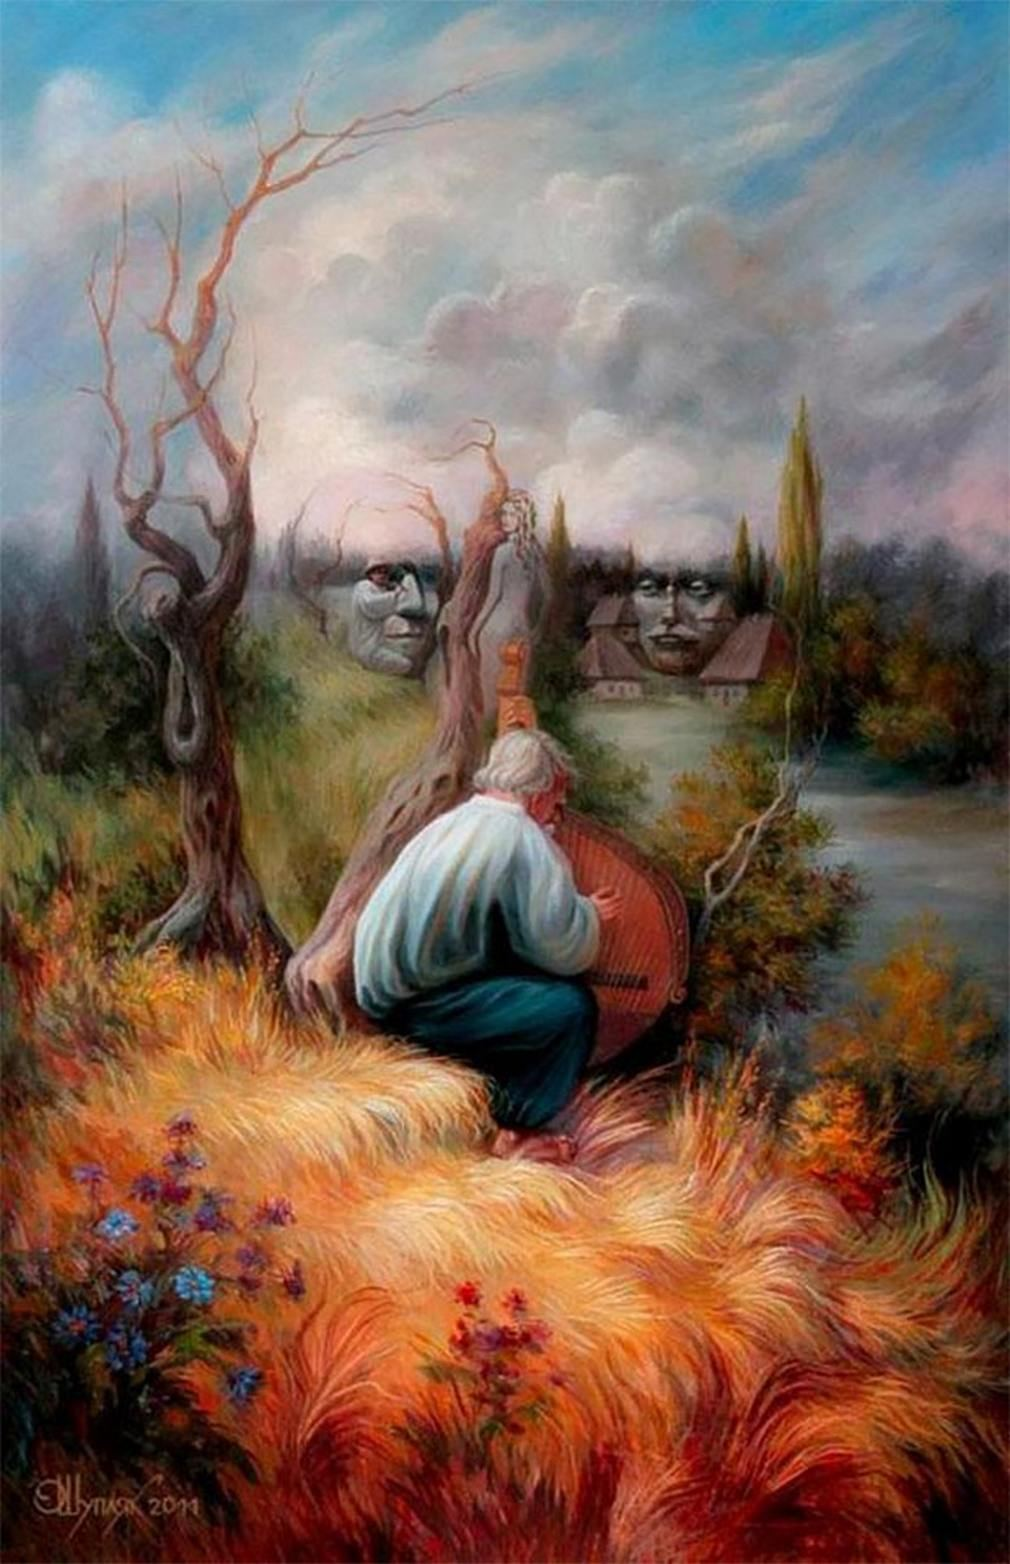 Superb Optical Illusion Art Russian Painter - Illusion Art Oleg Shuplyak